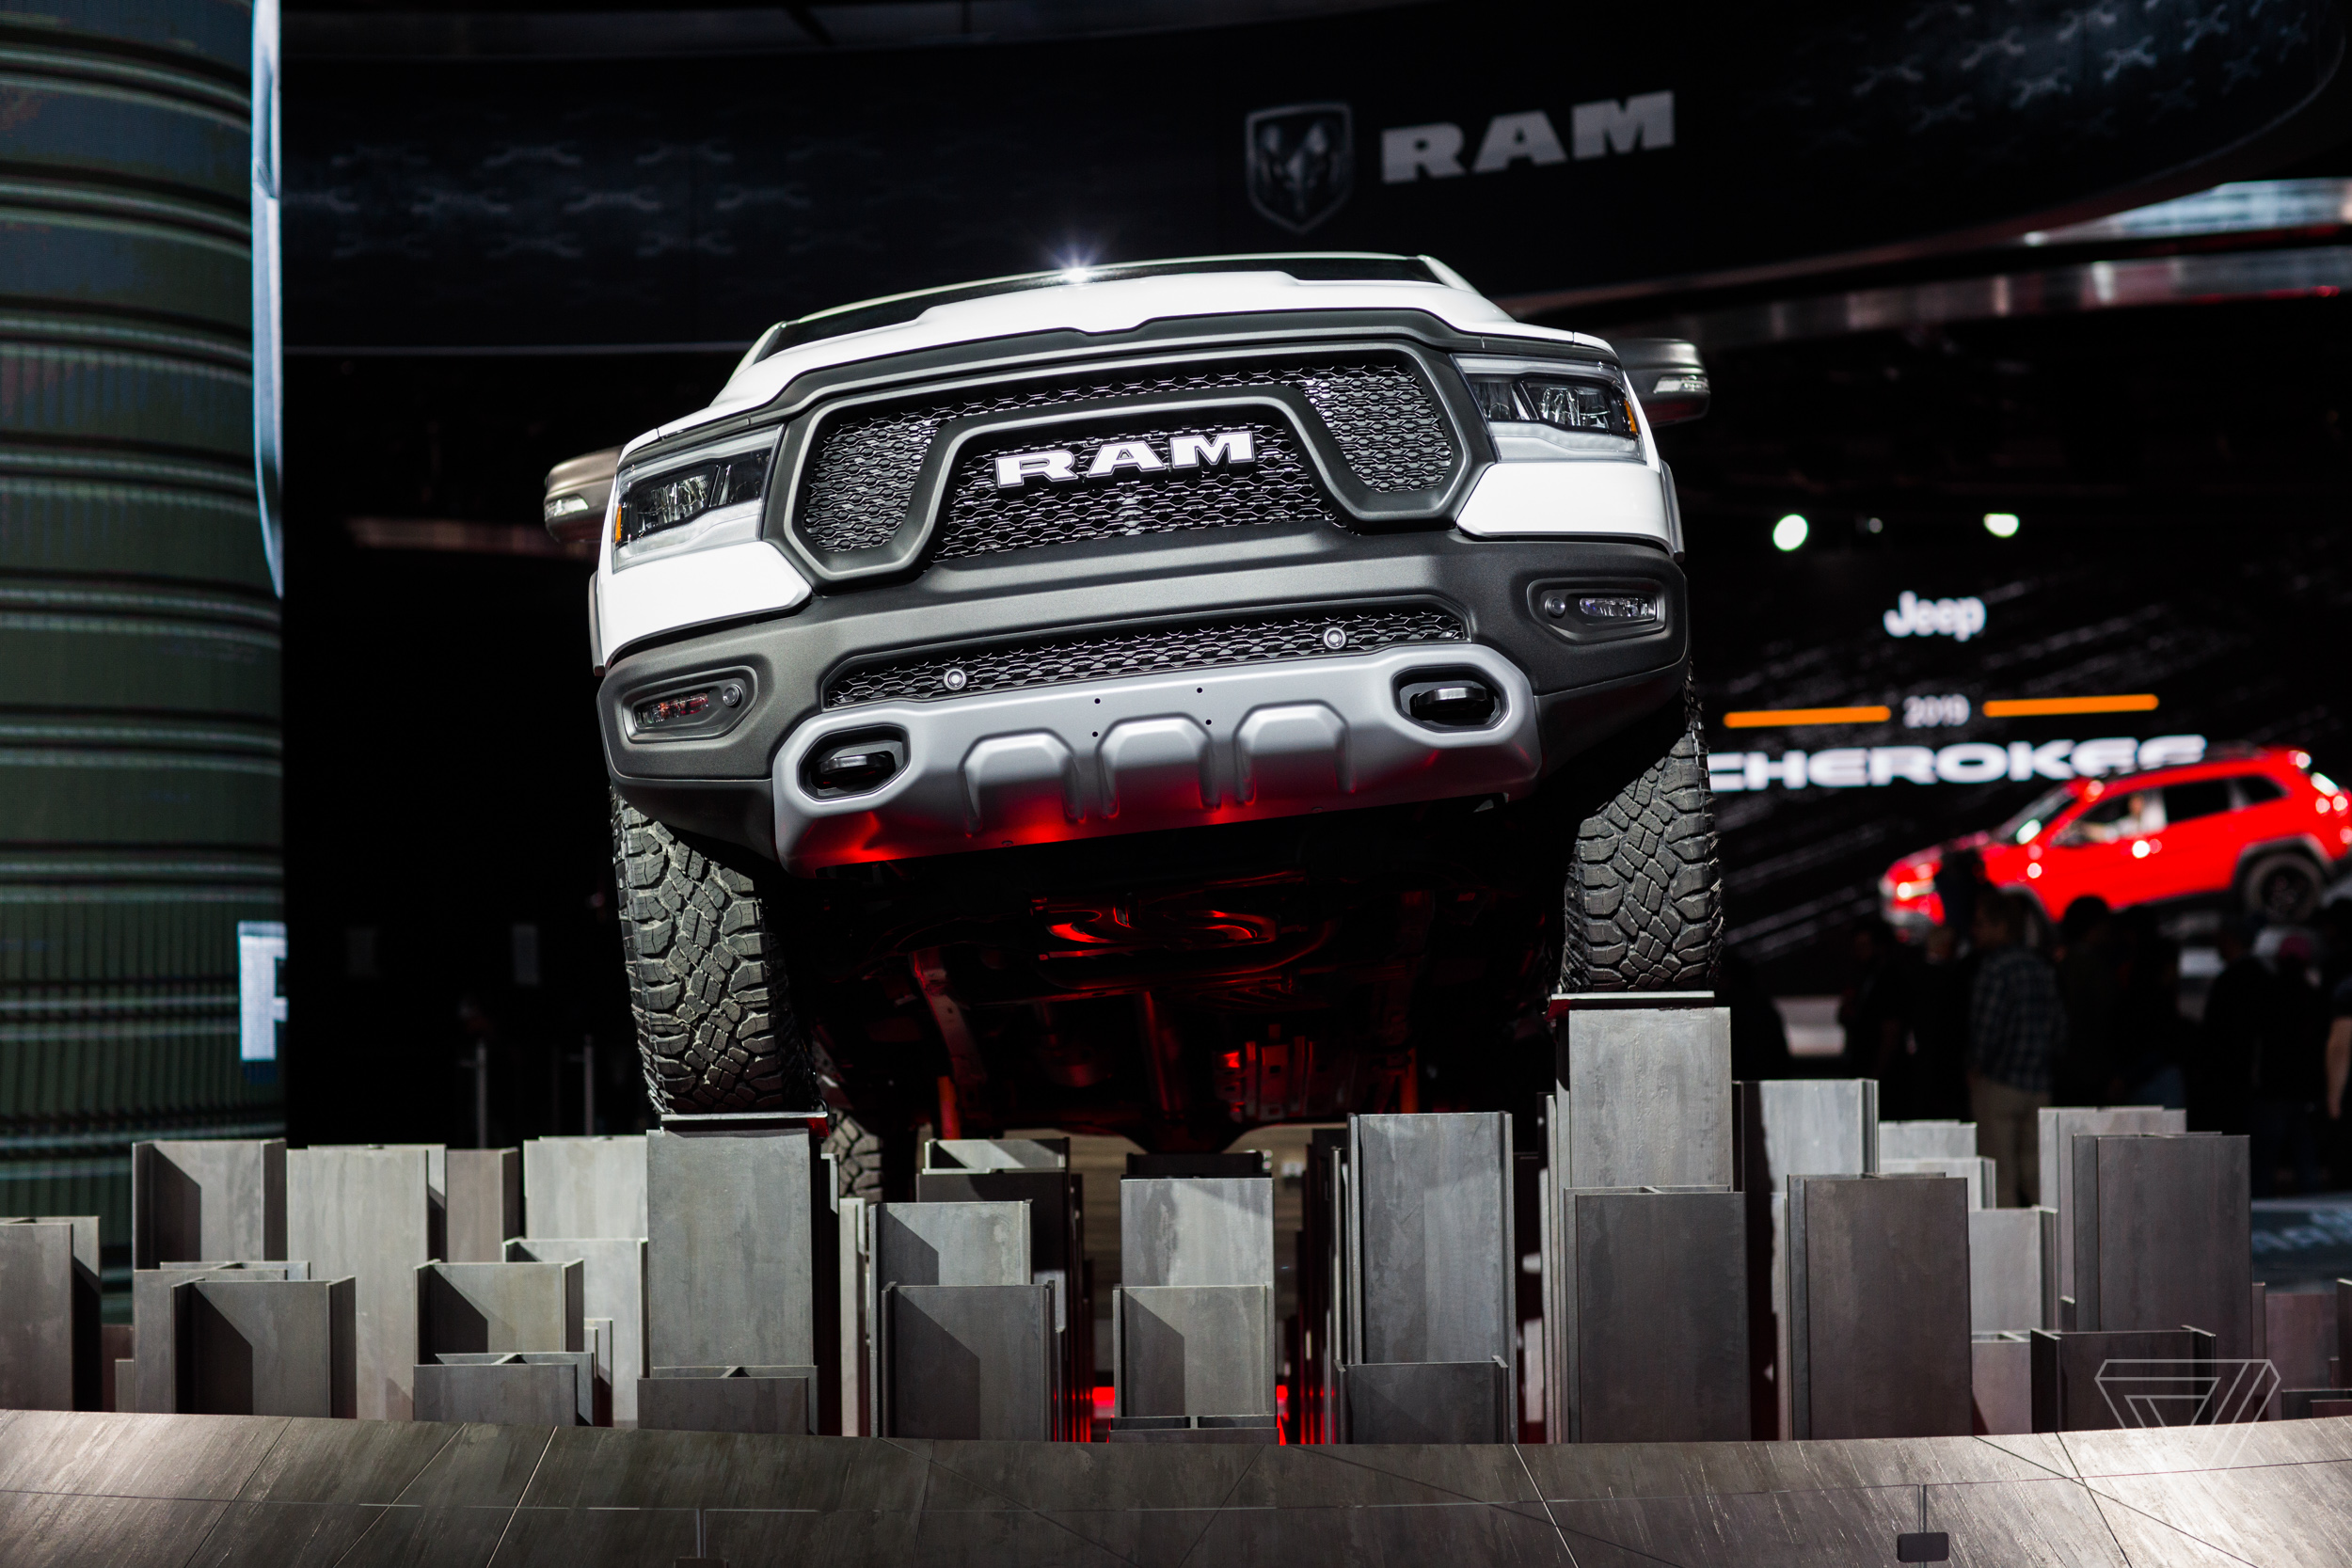 The best, worst, and weirdest cars from the 2018 Detroit Auto Show - The Verge